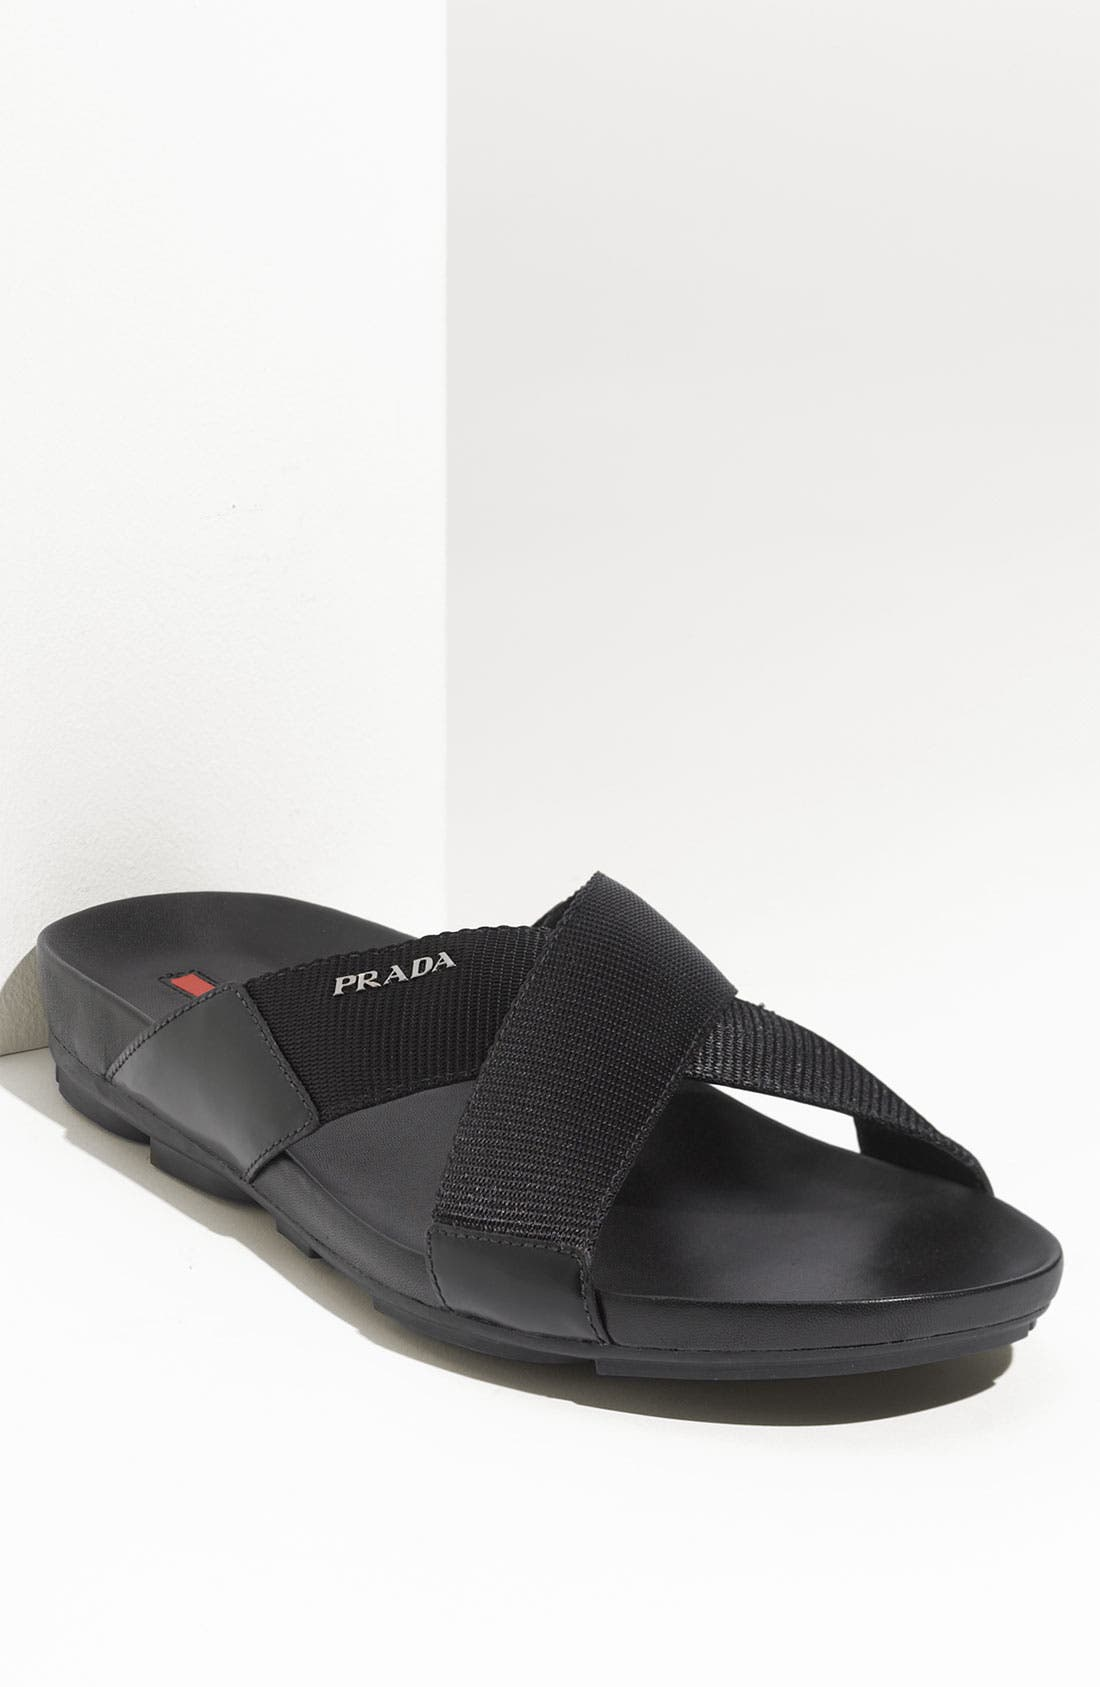 Alternate Image 1 Selected - Prada Cross Strap Nylon Slide